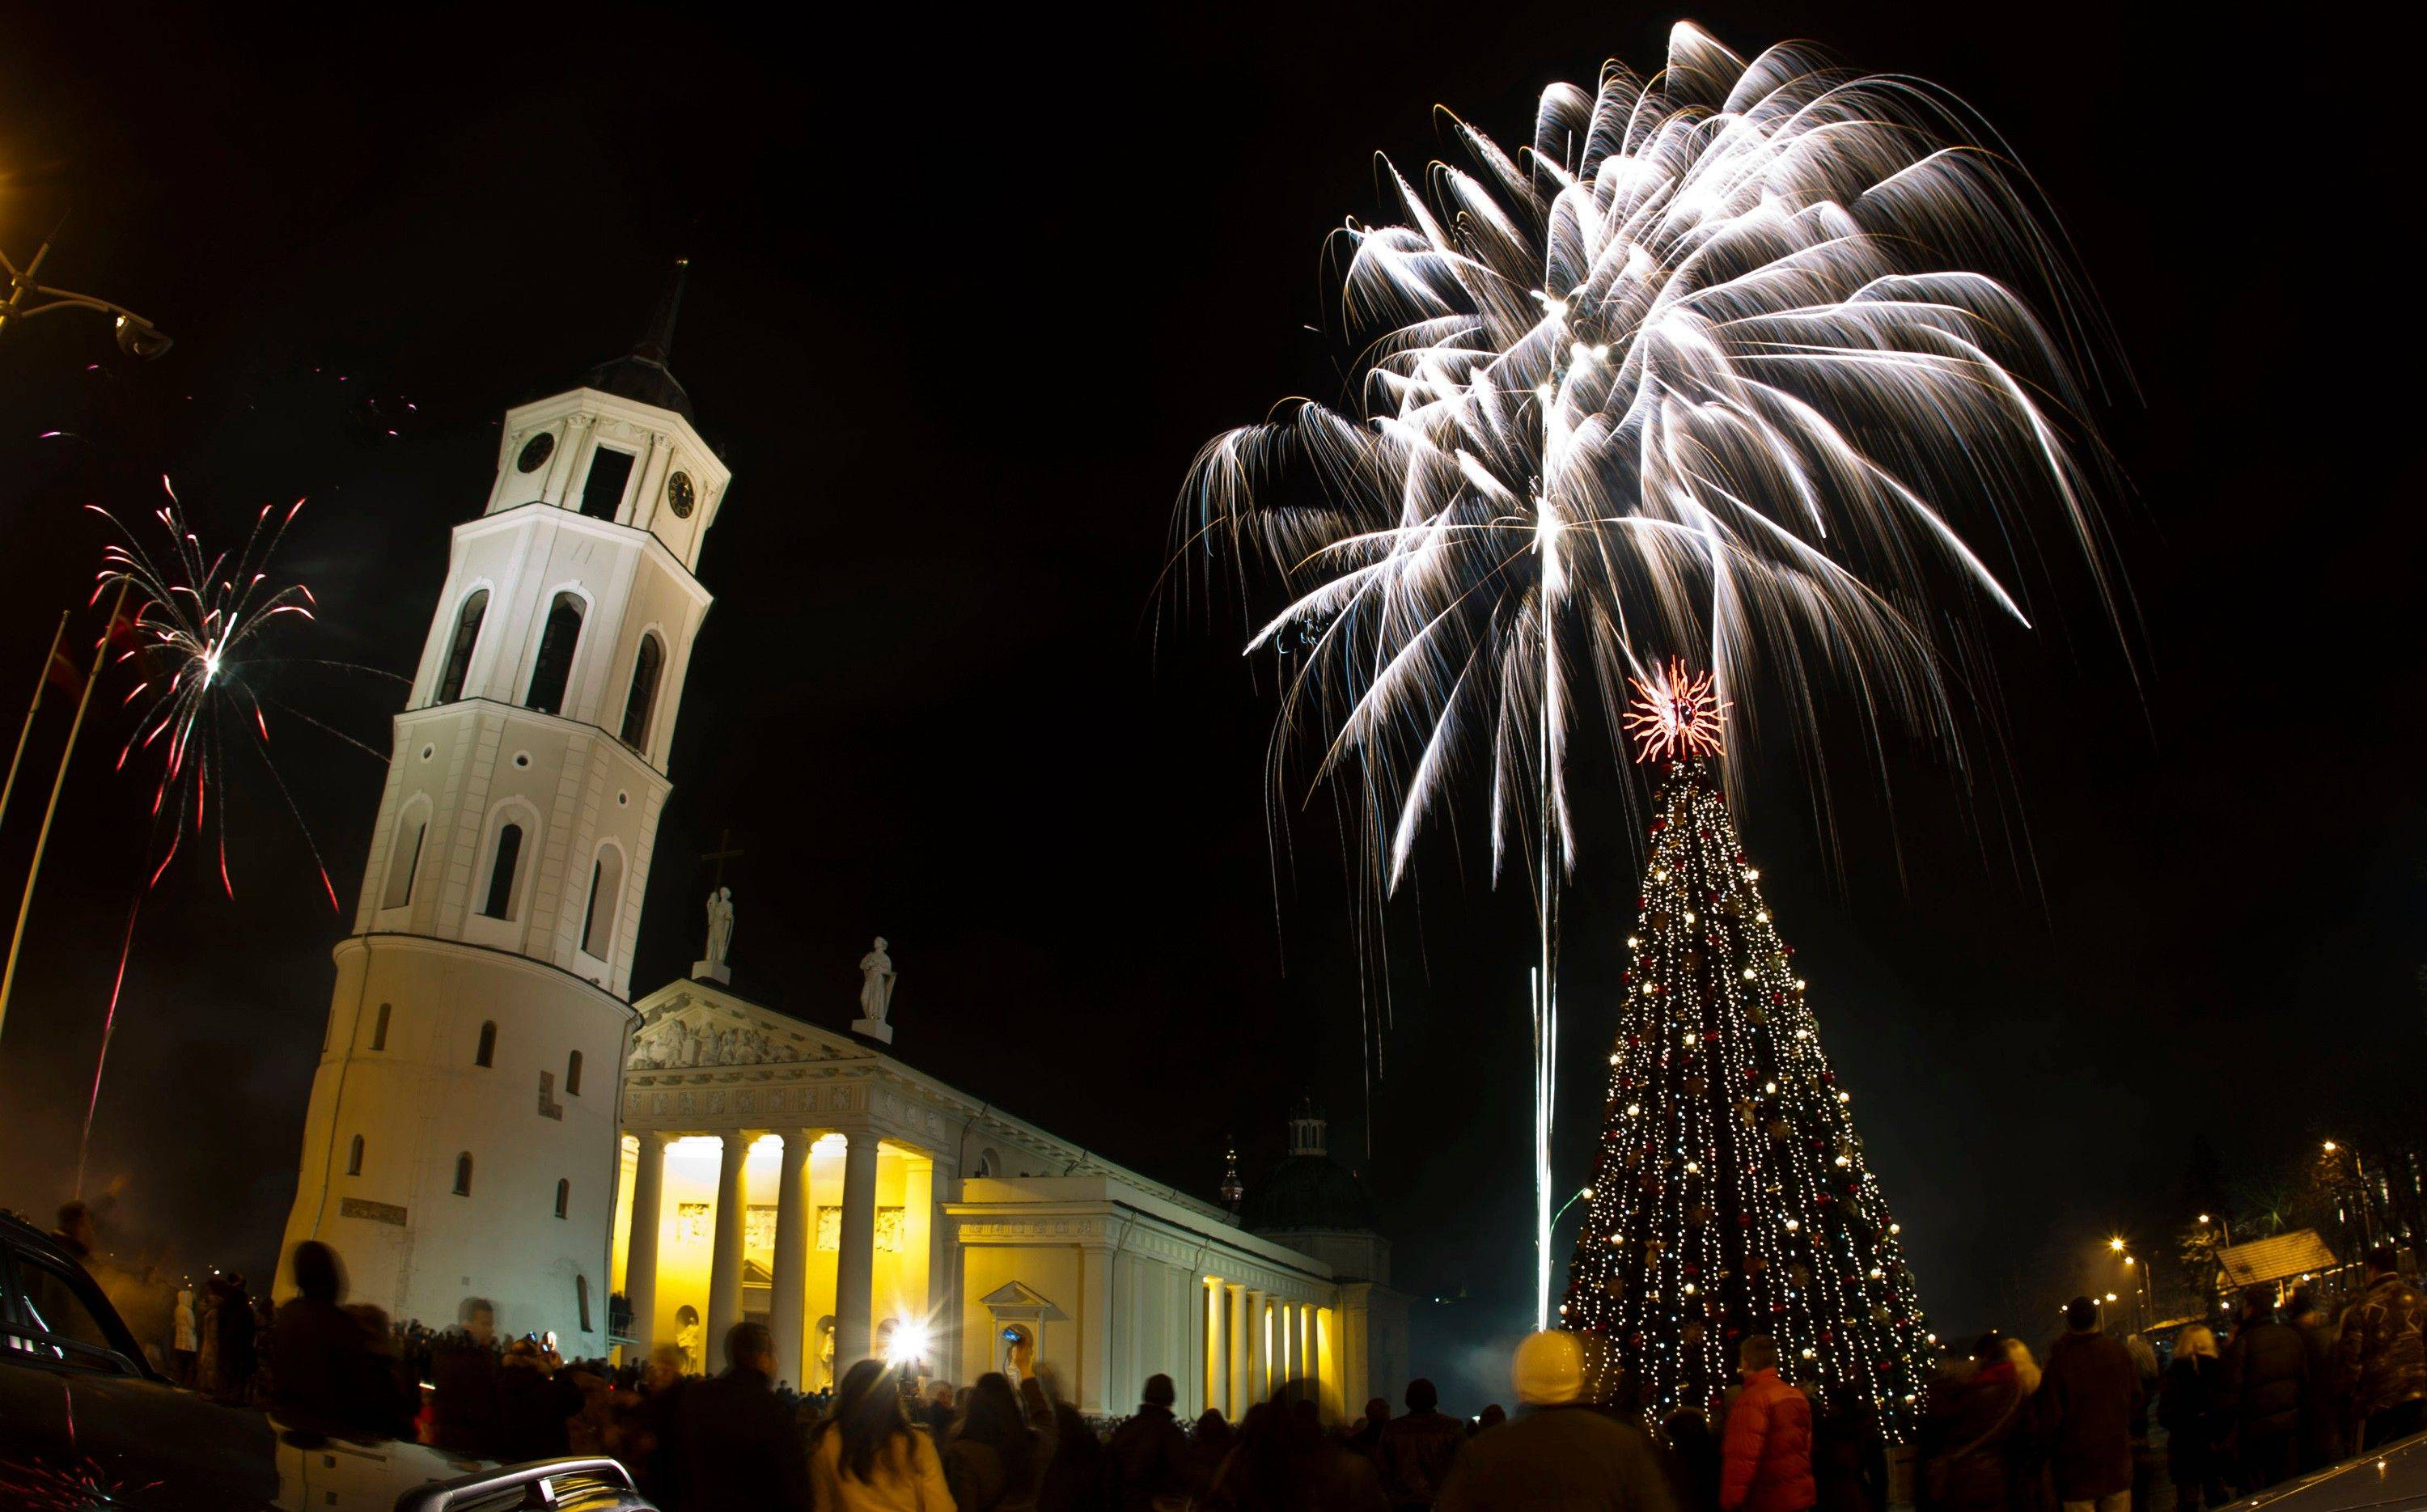 Fireworks light the sky above the Cathedral Square in Vilnius shortly after midnight, greeting the New Year, Sunday, Jan. 1, 2012. Thousands of people celebrated the beginning of the New Year 2009 in the Lithuanian capital.